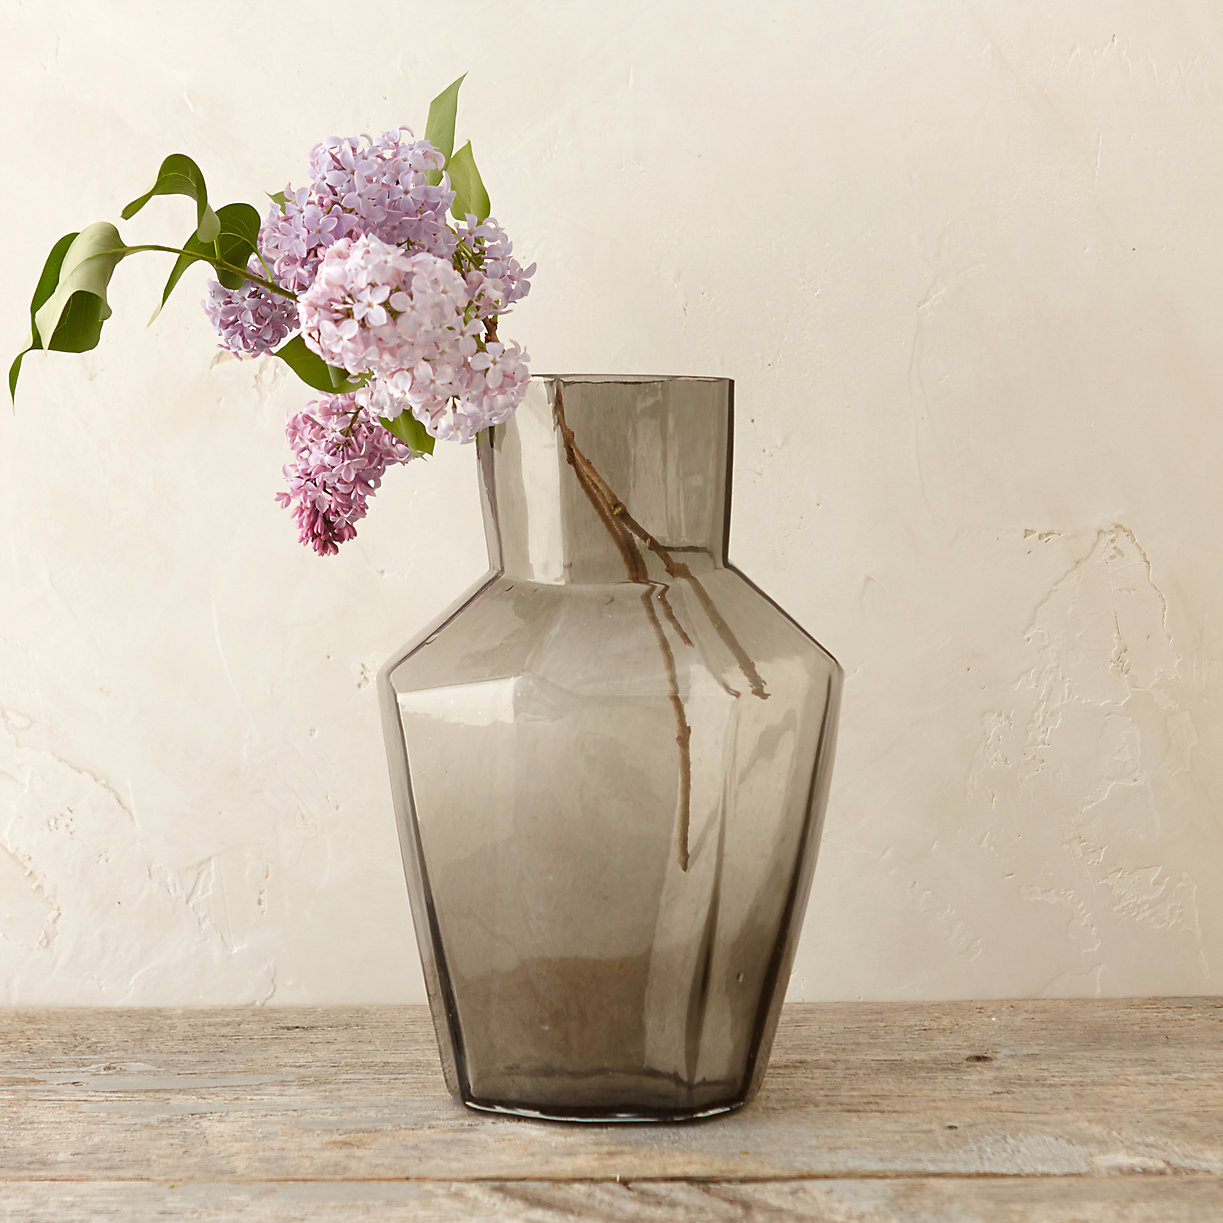 Smoky geometric vase from Terrain